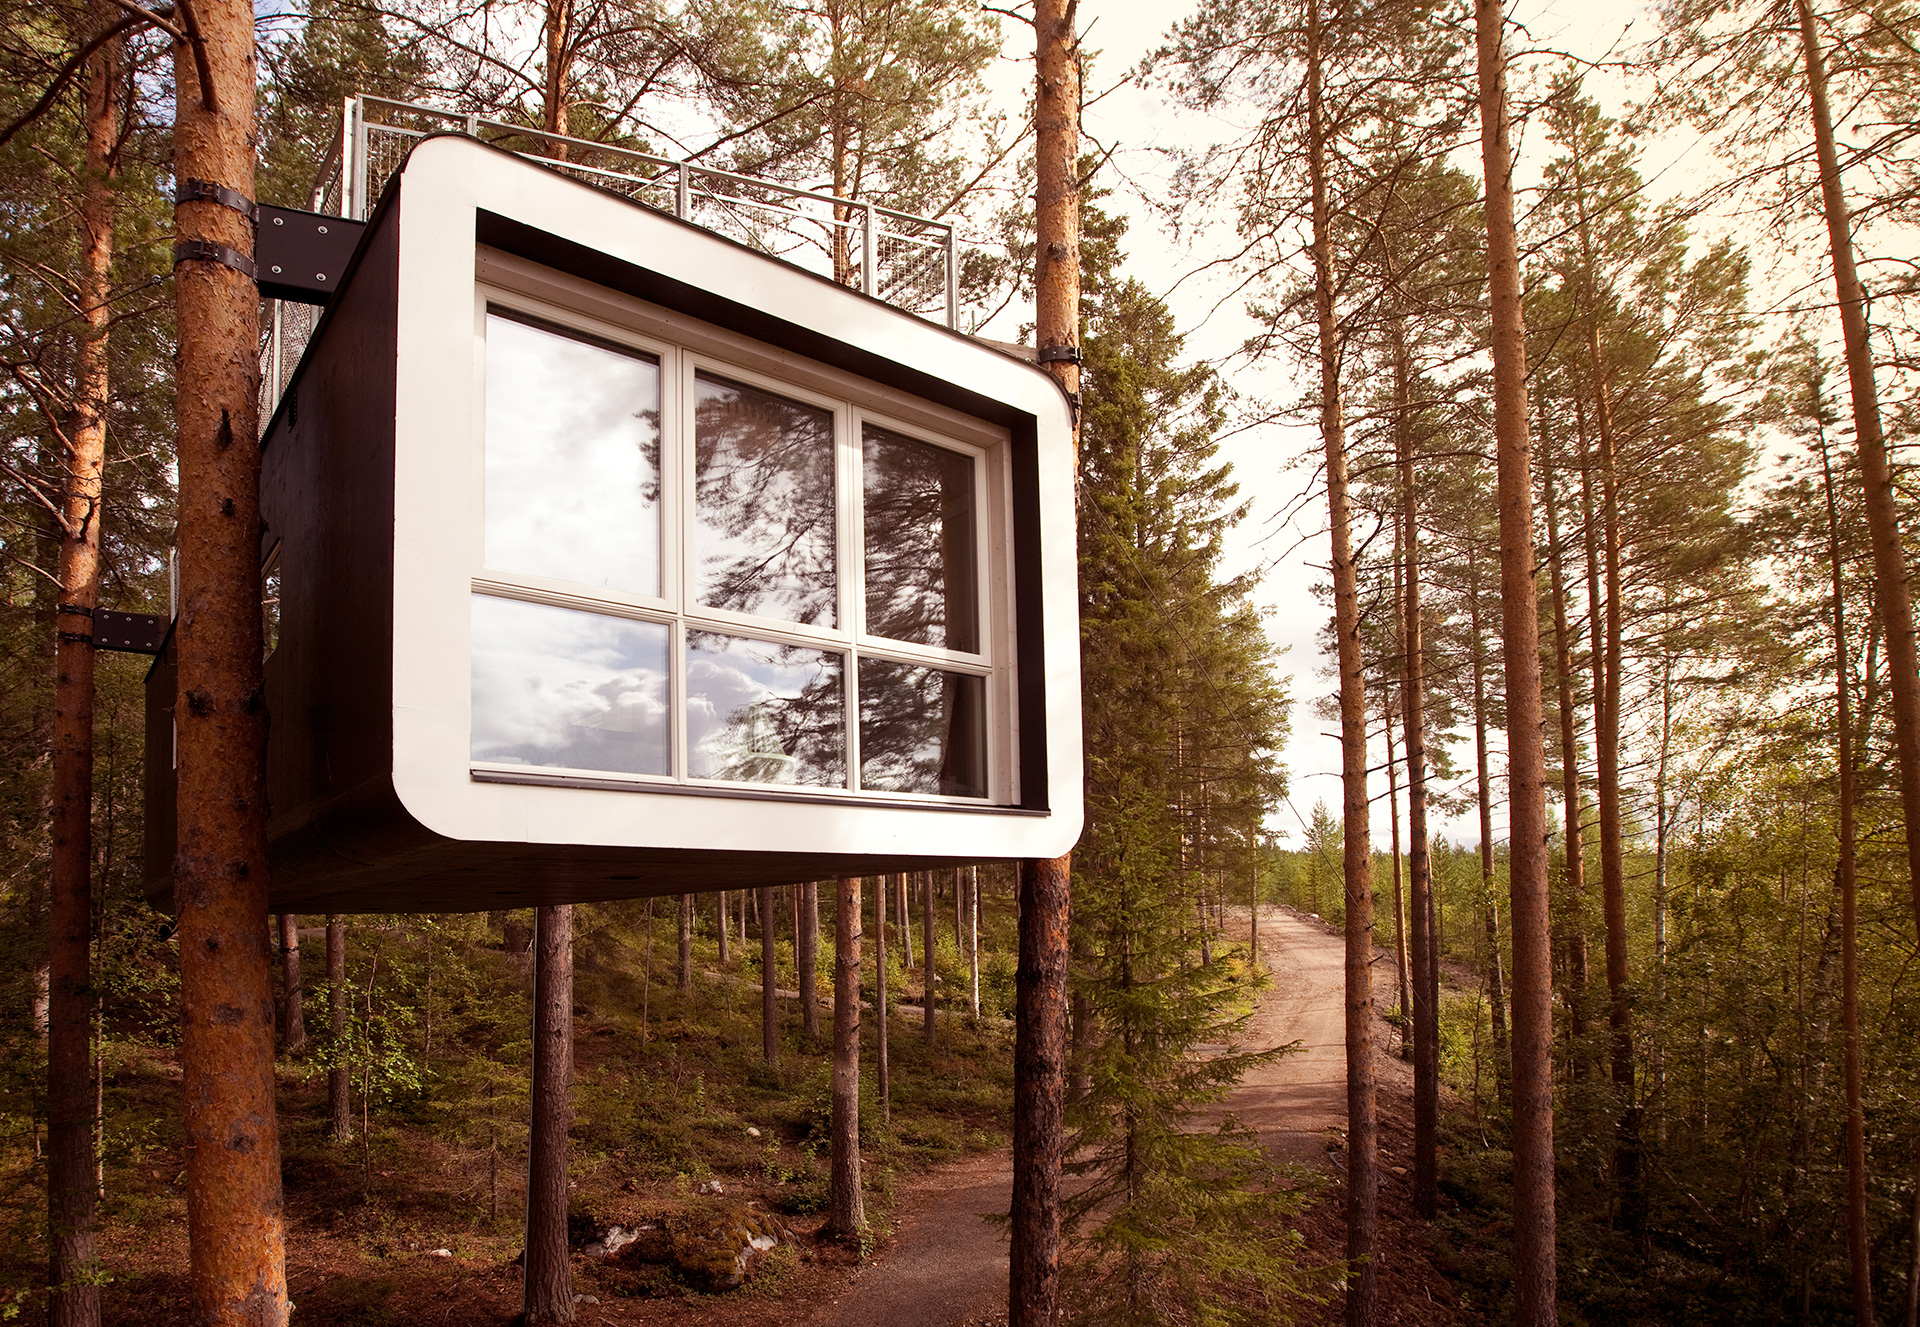 The Cabin was constructed in 2010 by Cyren and Cyren architects. It has been designed for two people with one double bed | Treehotel | Kent, Britta Lindvall | STIR